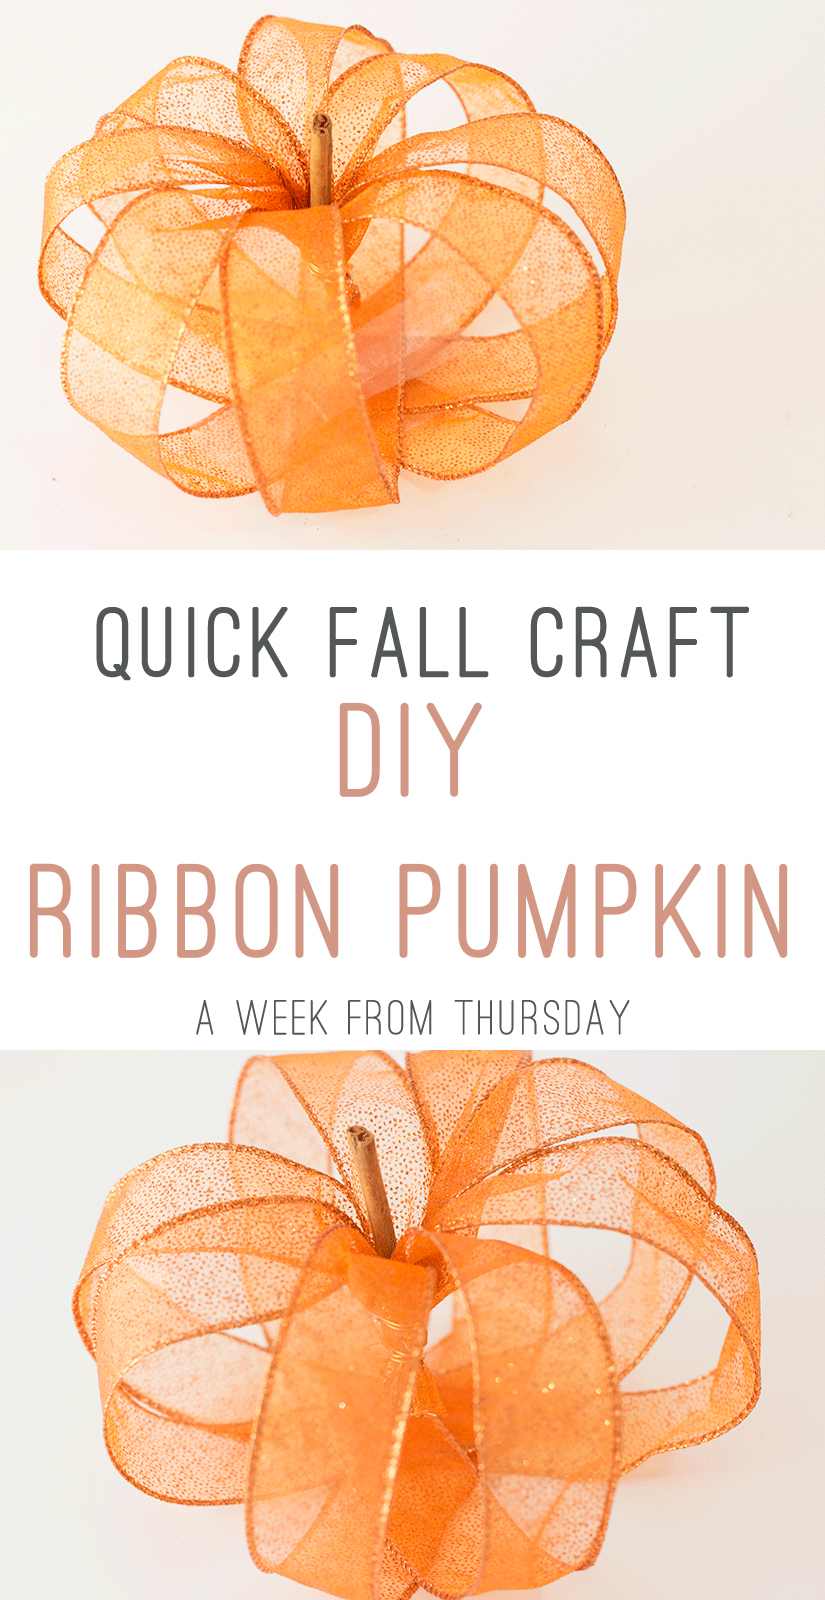 Ribbon-Pumpkin-Pinterest